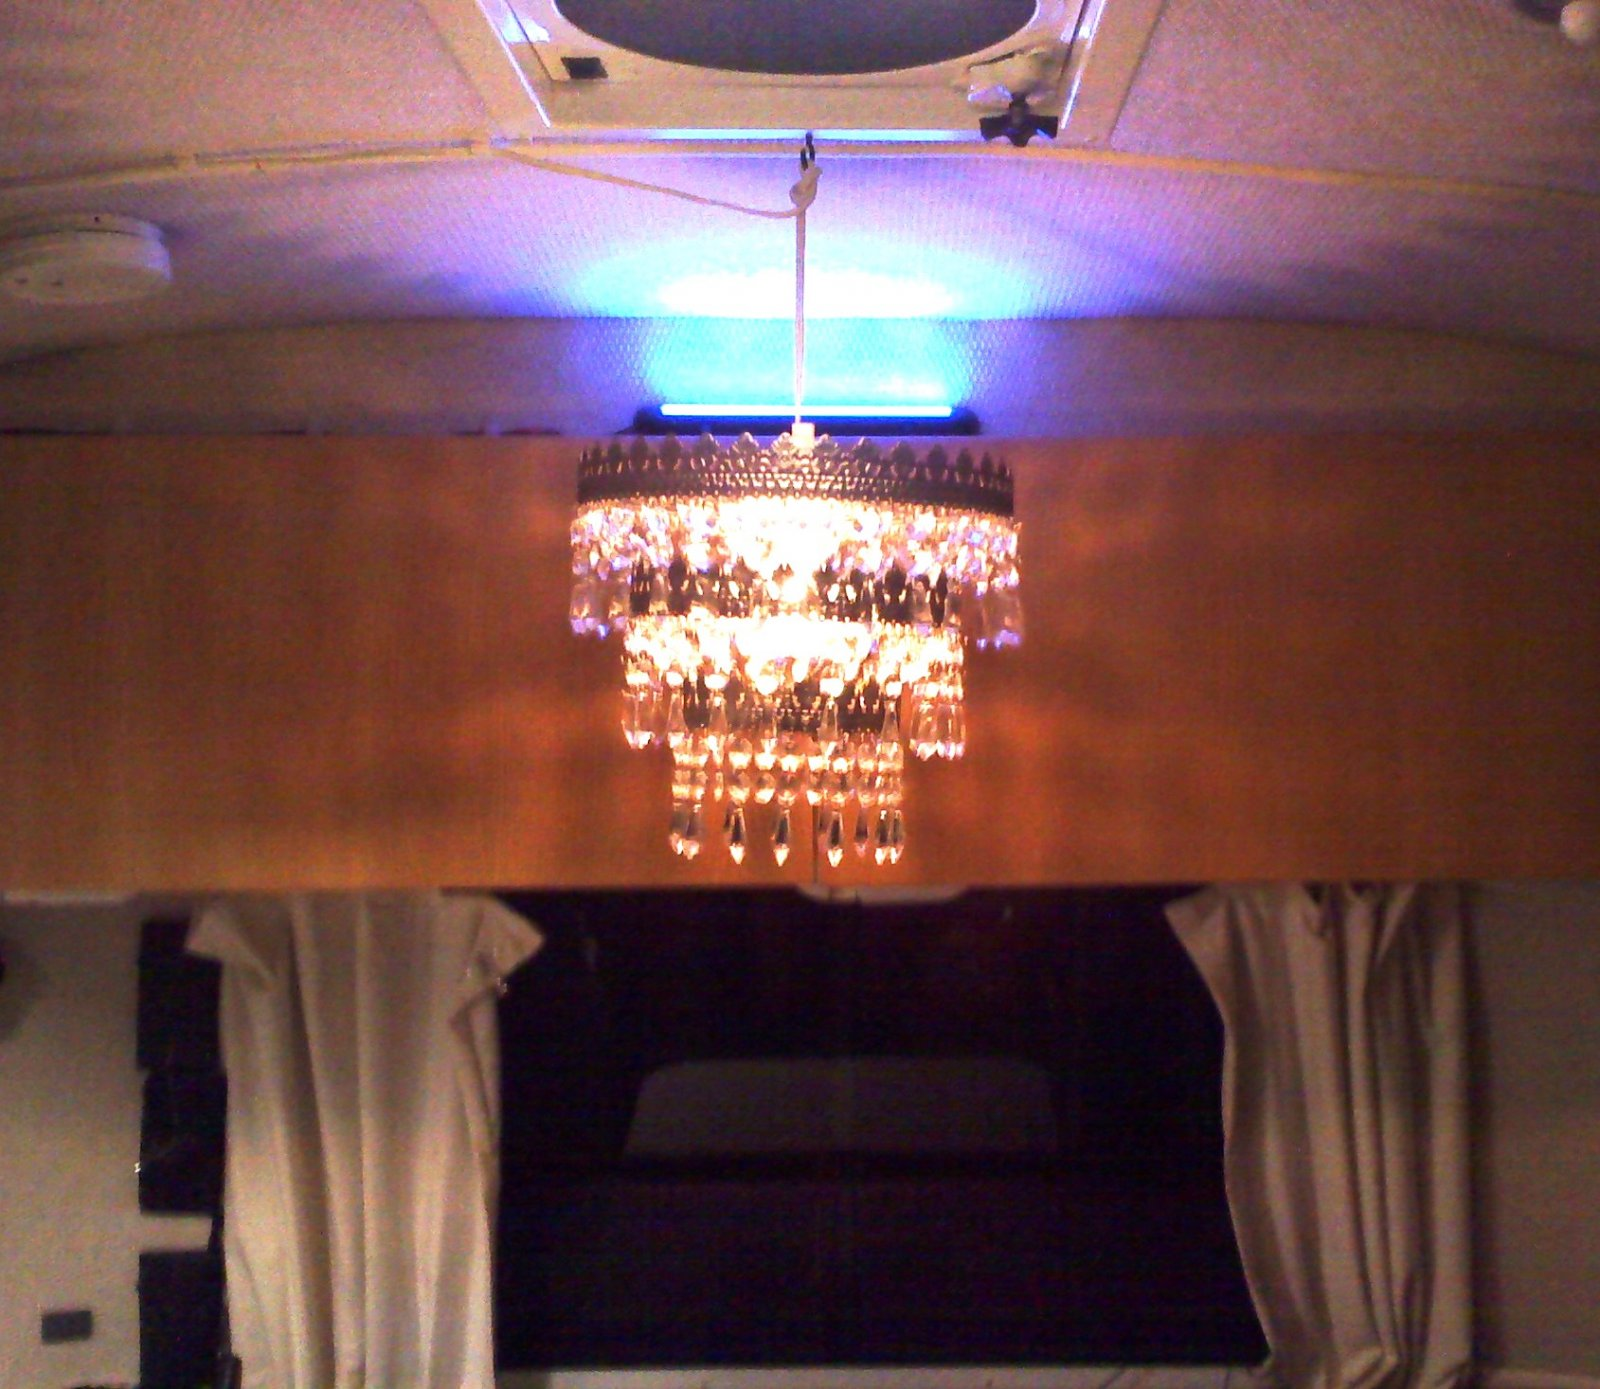 Click image for larger version  Name:Chandelier.jpg Views:108 Size:284.7 KB ID:151666